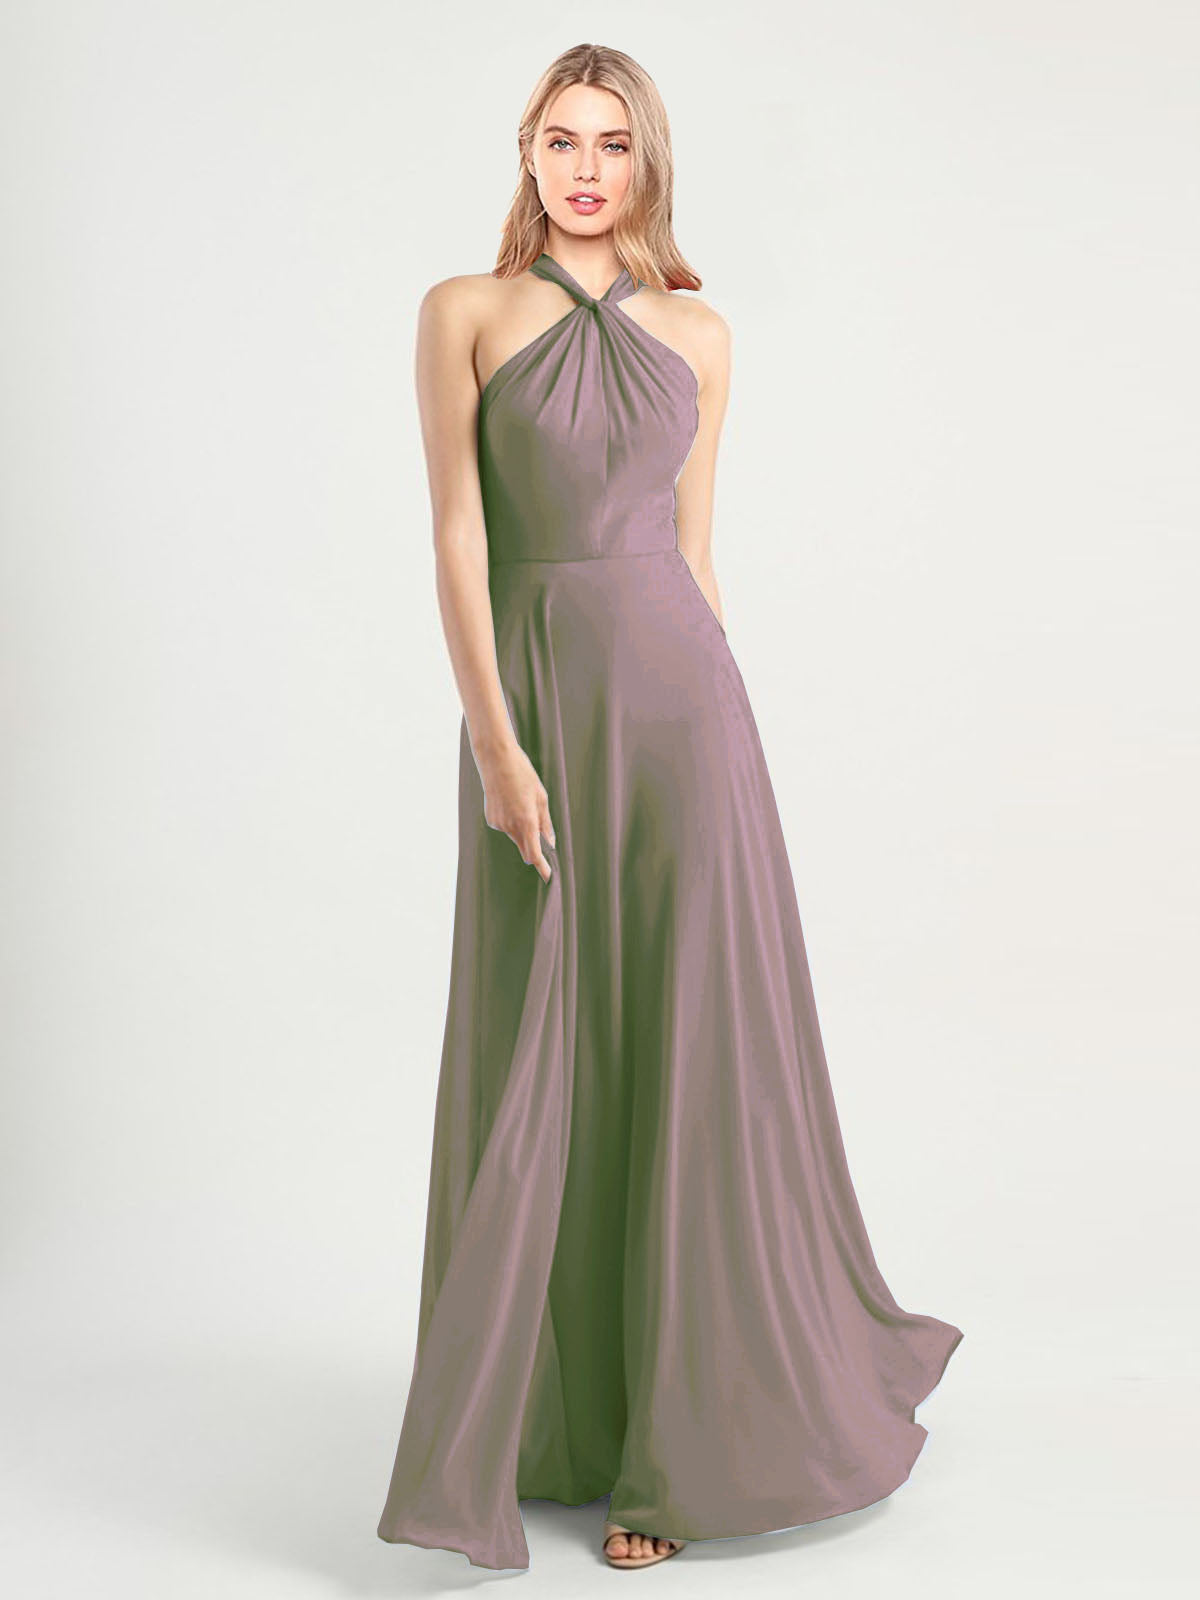 Long A-Line High Neck, Halter Sleeveless Dusty Rose Chiffon Bridesmaid Dress Yoli